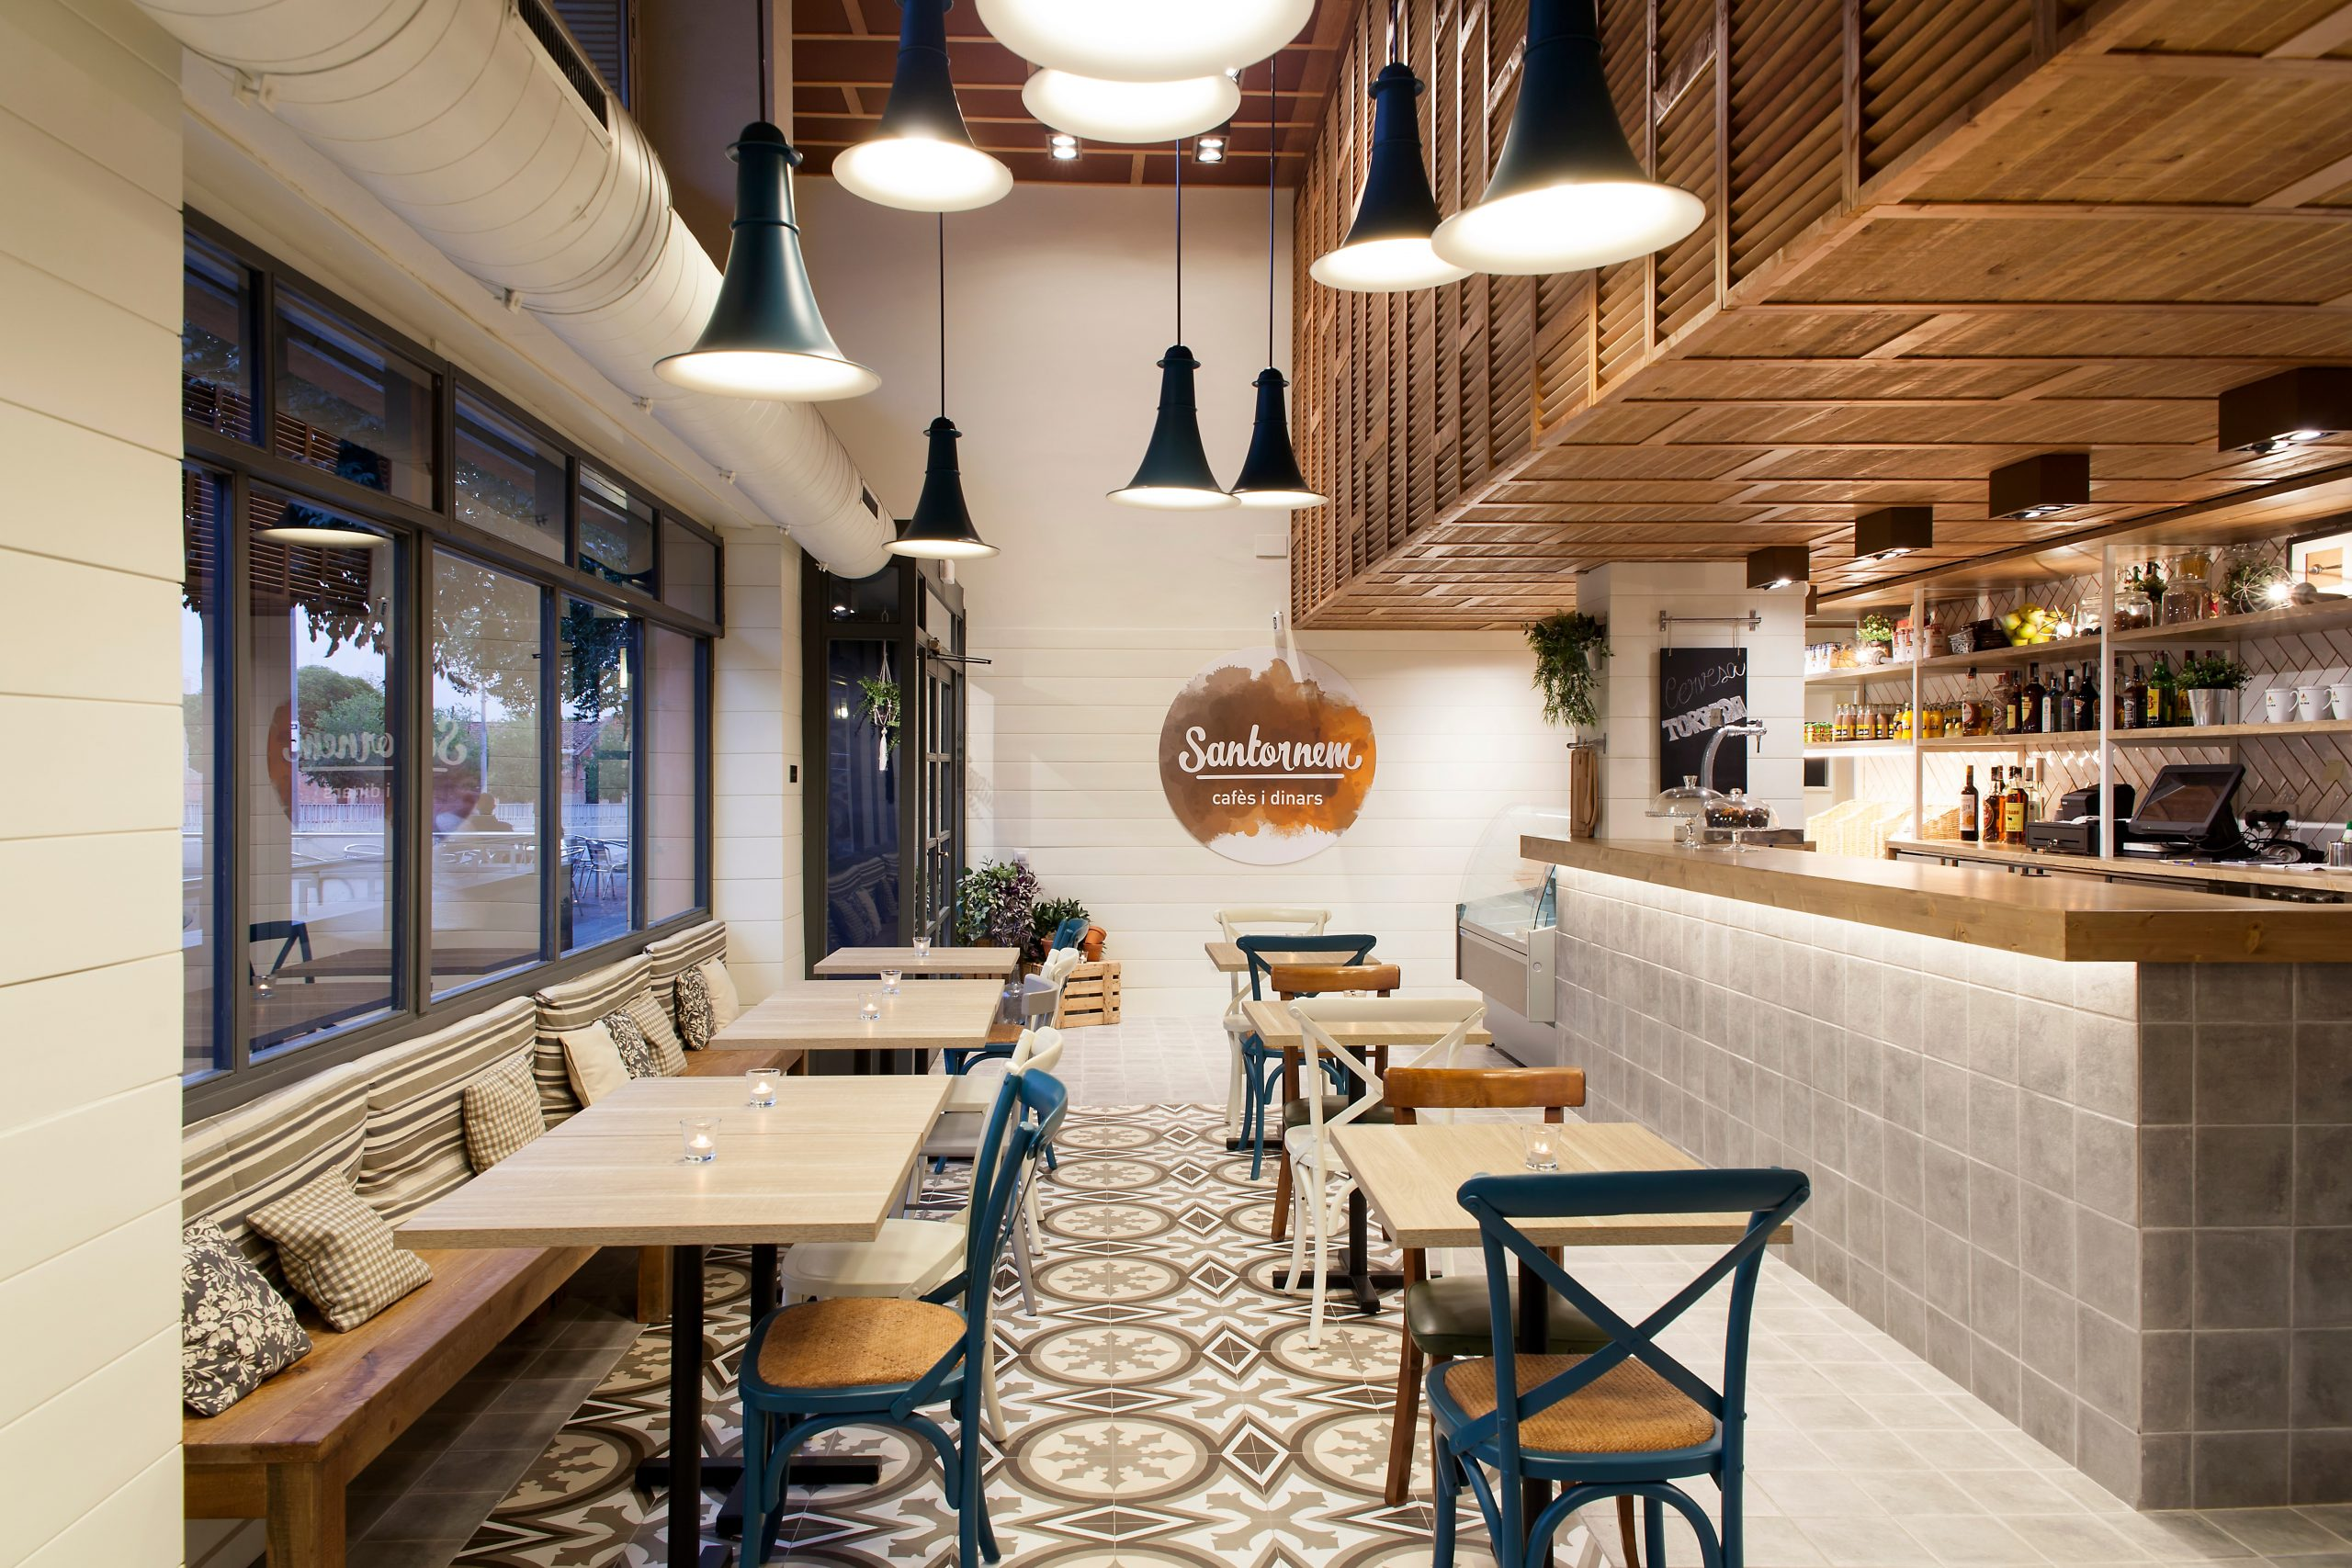 7 Cafe Interior Design Ideas Your Customers Will Love [2020]